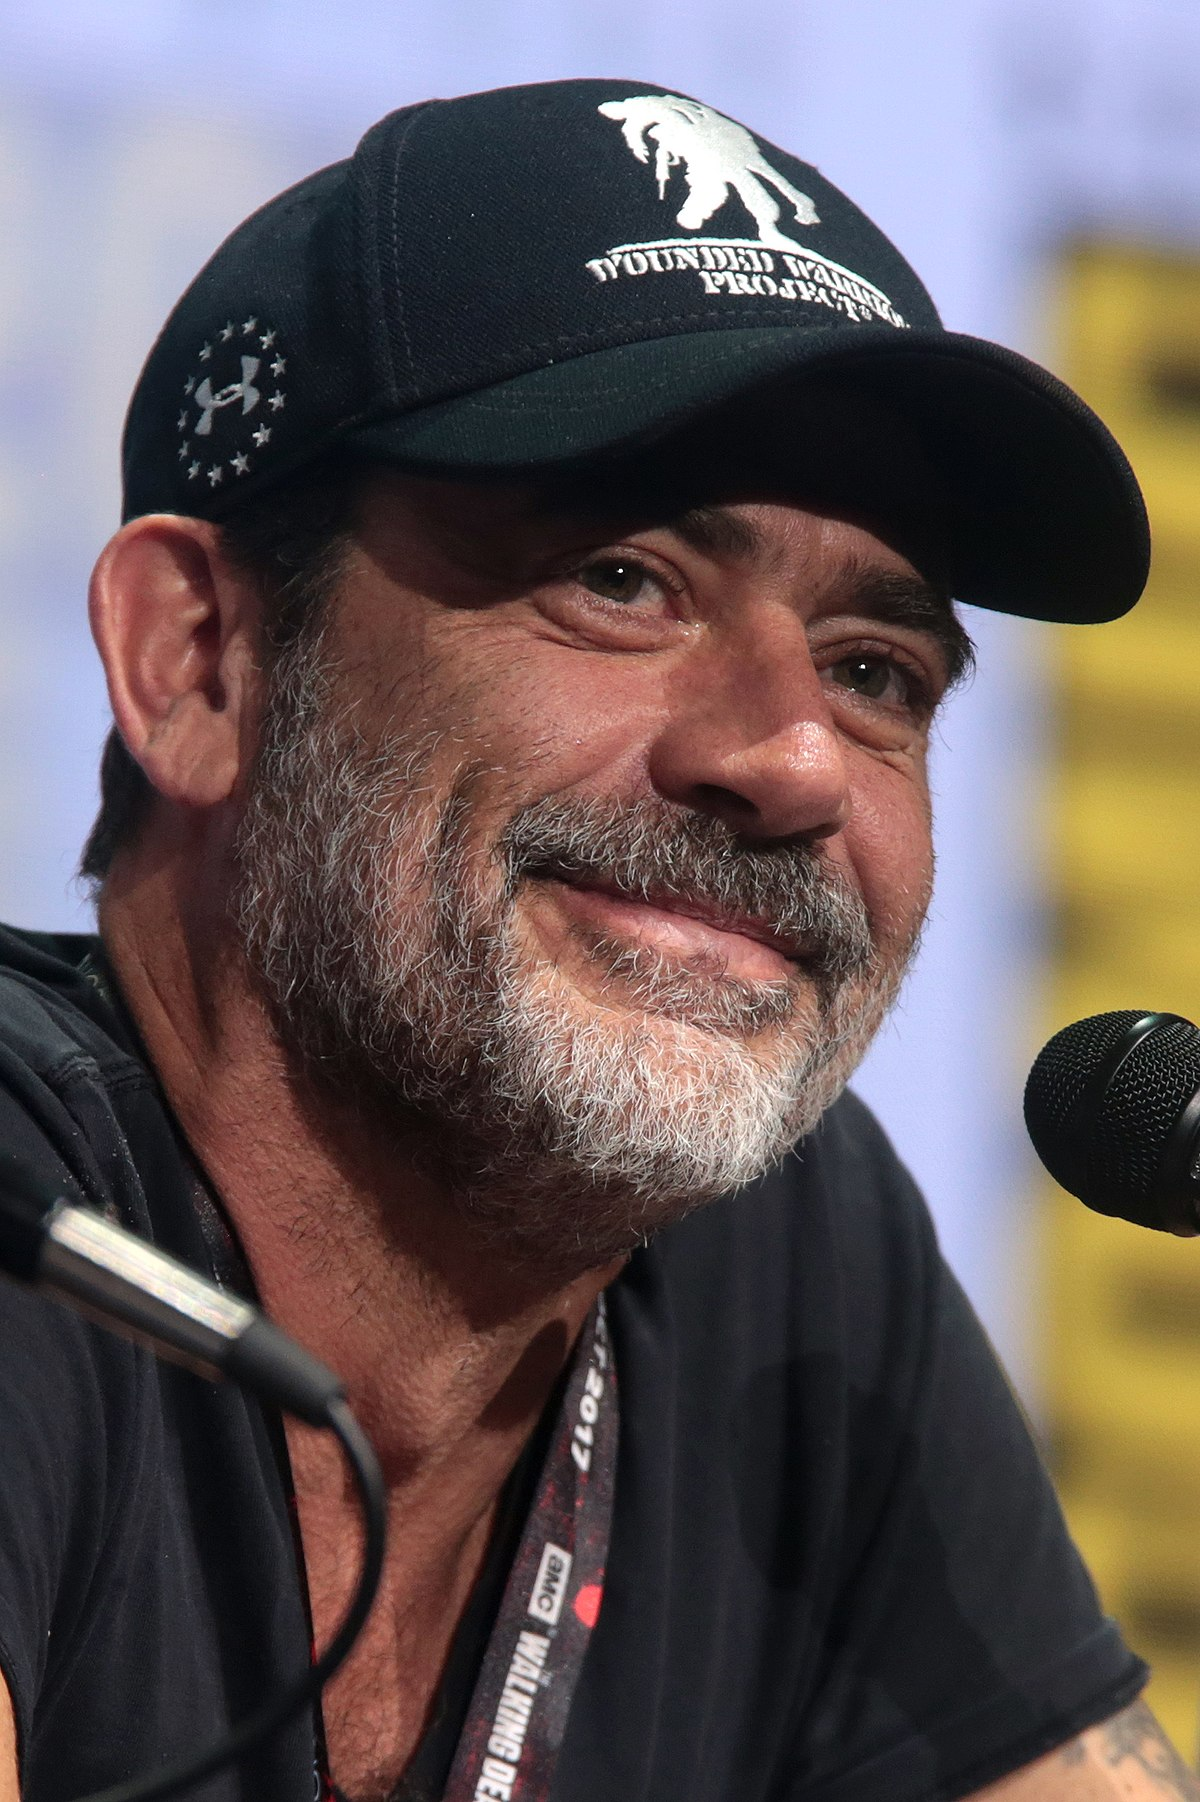 Jeffrey Dean Morgan Wikipedia The Free Encyclopedia | newhairstylesformen2014.com